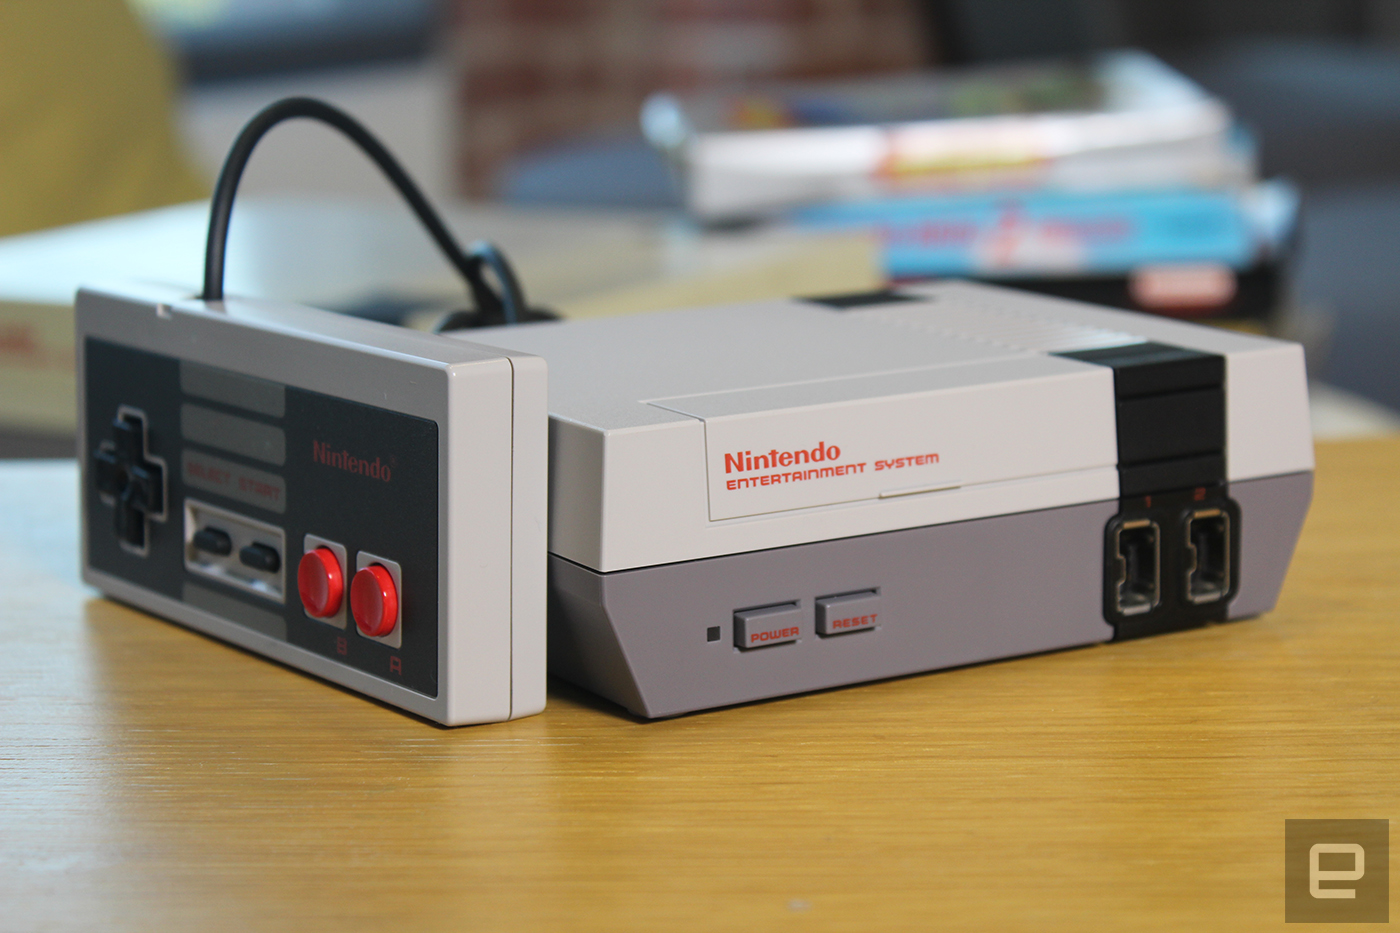 Nes classic edition review the best and worst of retro gaming aivanet if youve seen the original nintendo entertainment system youve basically seen the nes classic edition the mini console looks almost exactly like the publicscrutiny Images